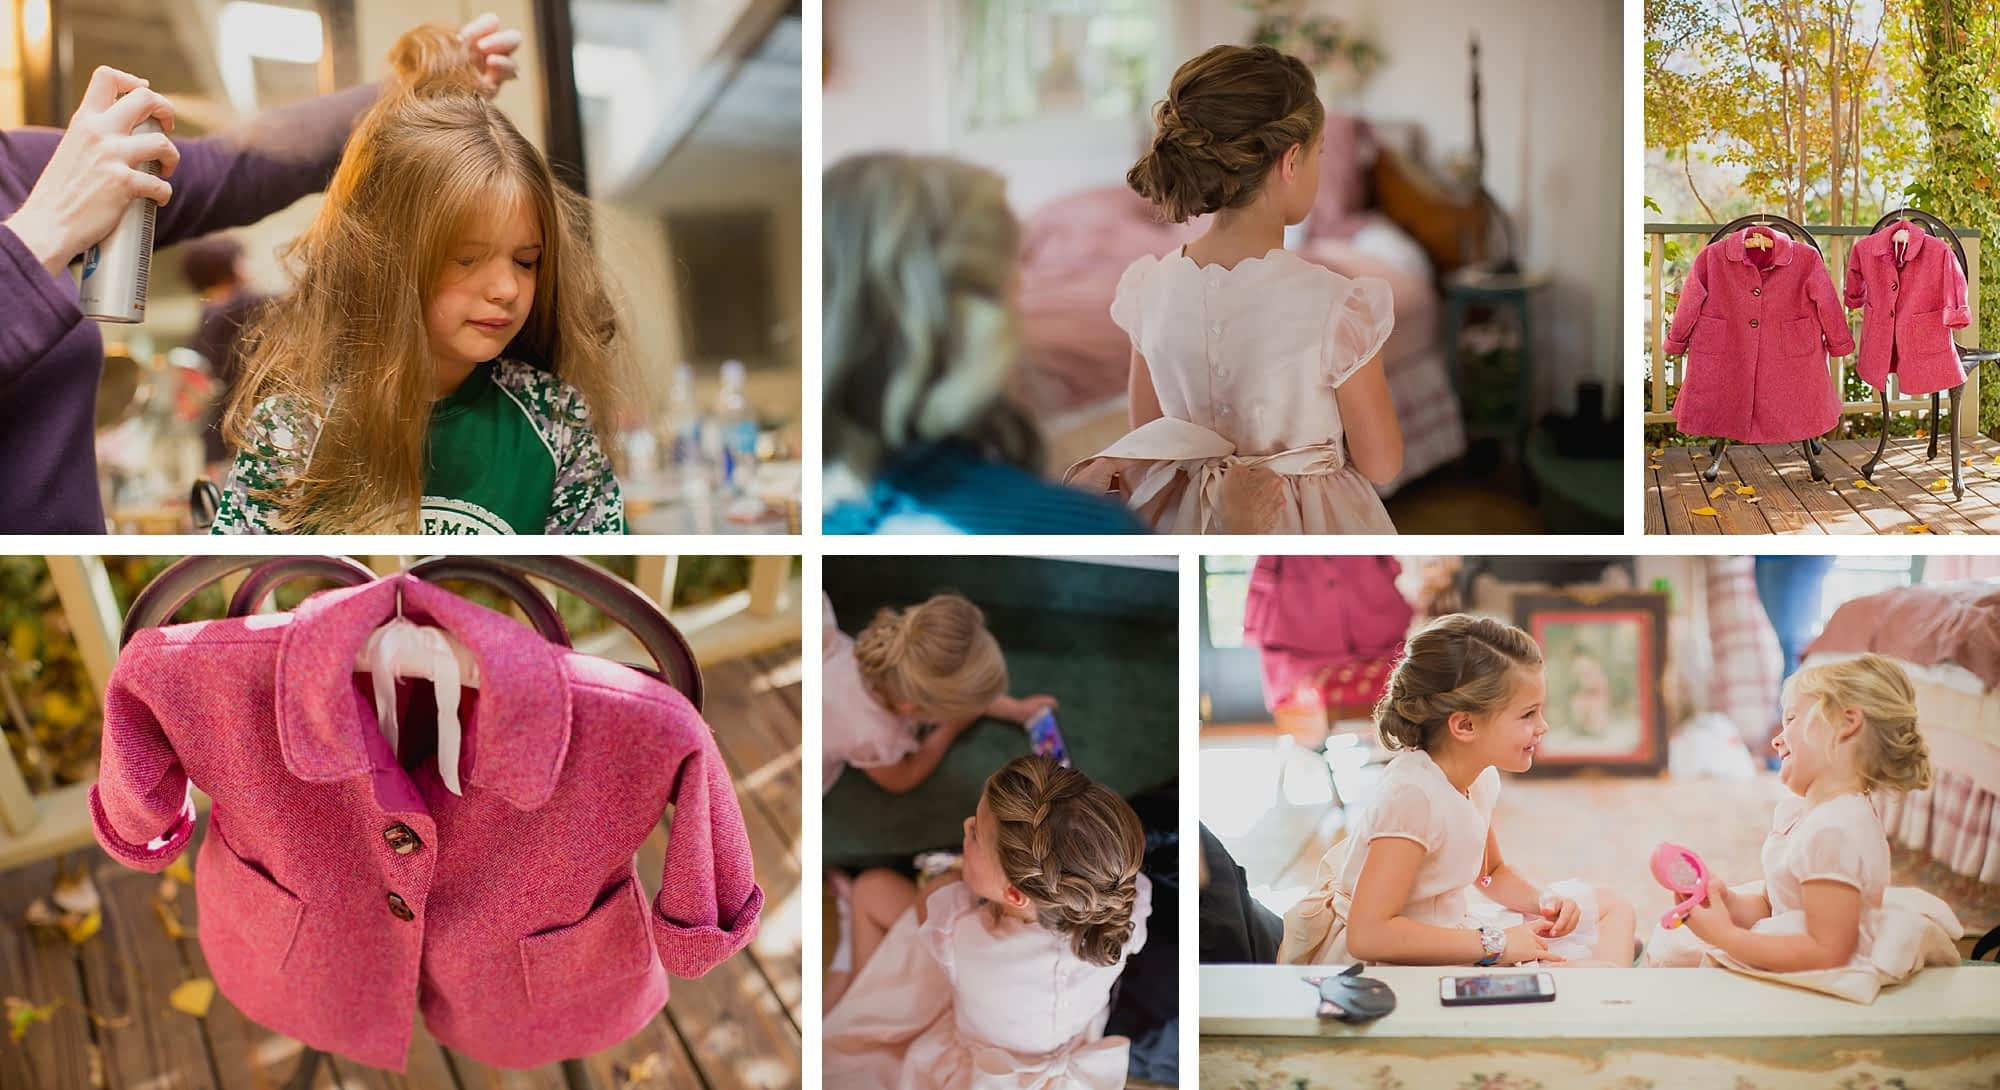 A collage of images of the flower girls. One girl closes her eyes while getting hairspray. Their pink handmade coats hang on chairs on the back patio. Their hair is both done in braided up-dos and the play together in their handmade pink dresses.